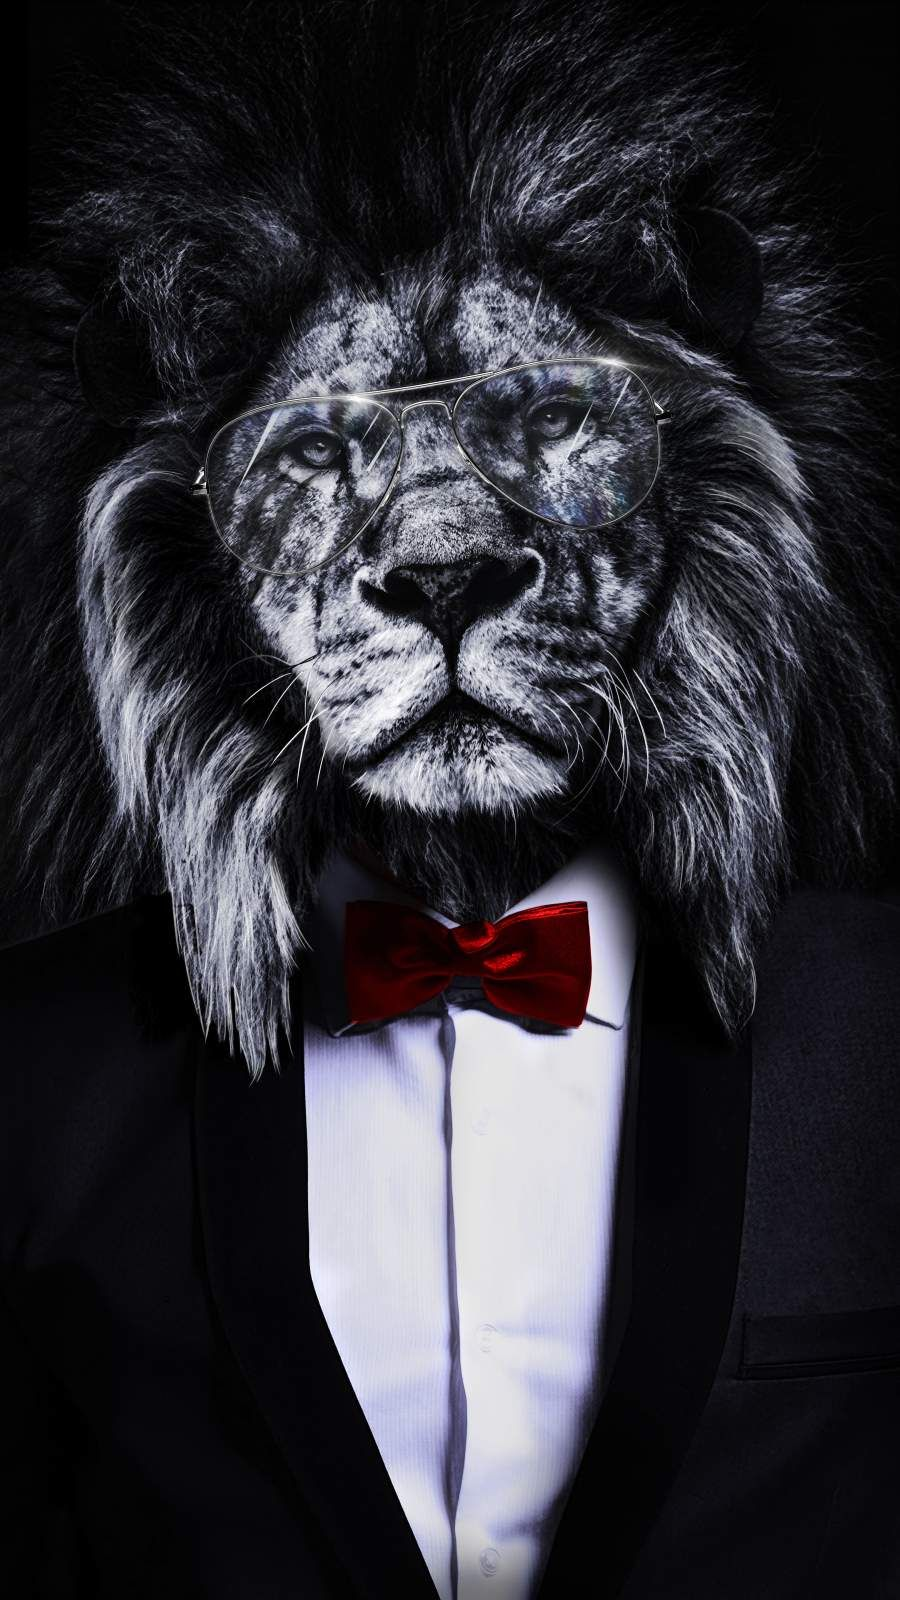 The Corporate Lion Iphone Wallpaper Lion Wallpaper Iphone